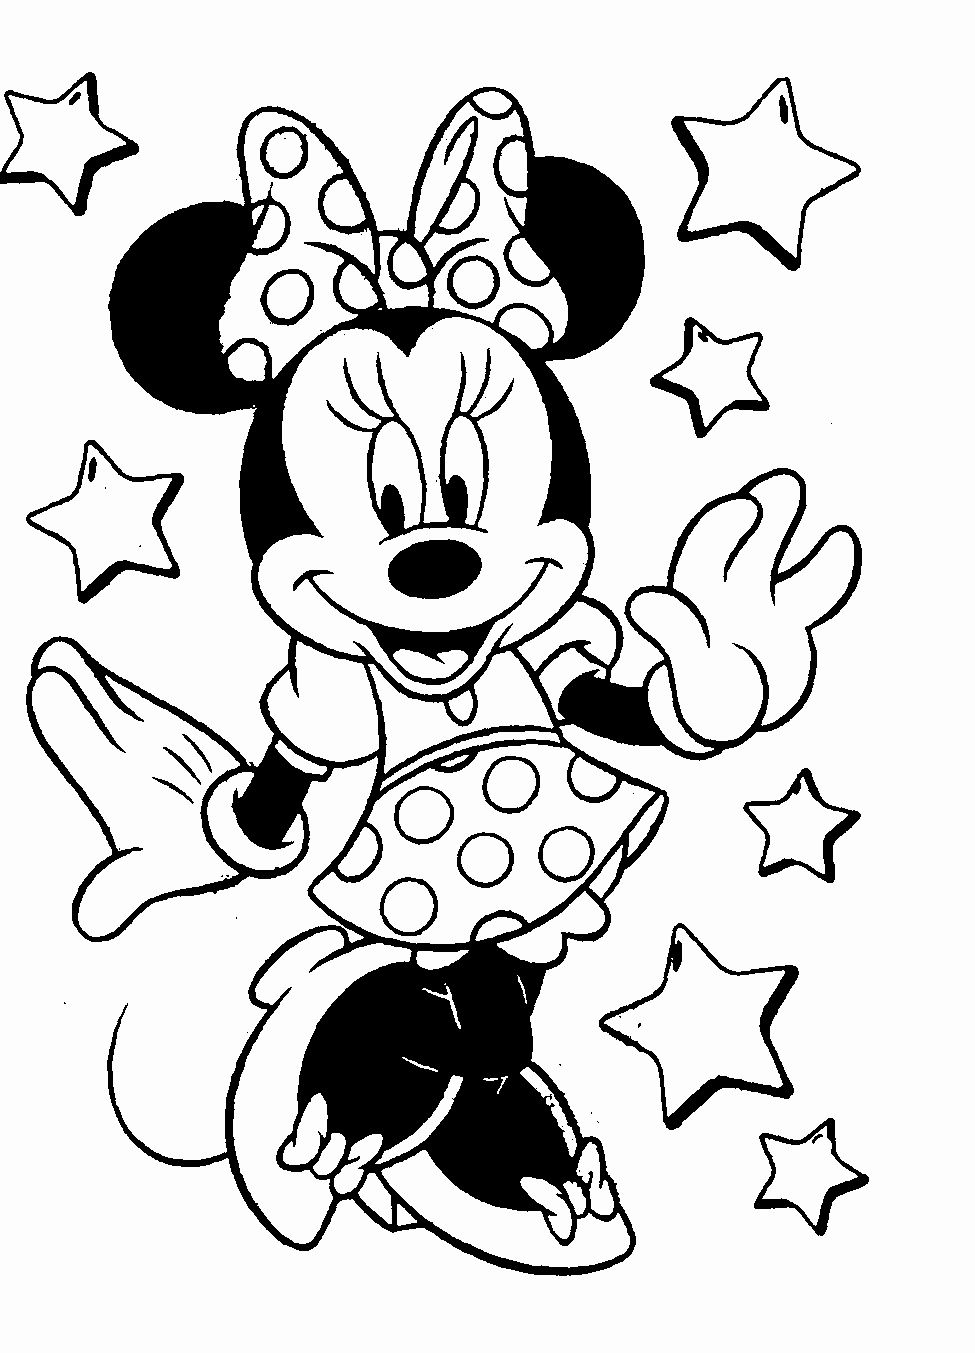 Disney Characters Coloring Sheets In 2020 Disney Coloring Pages Free Disney Coloring Pages Disney Characters